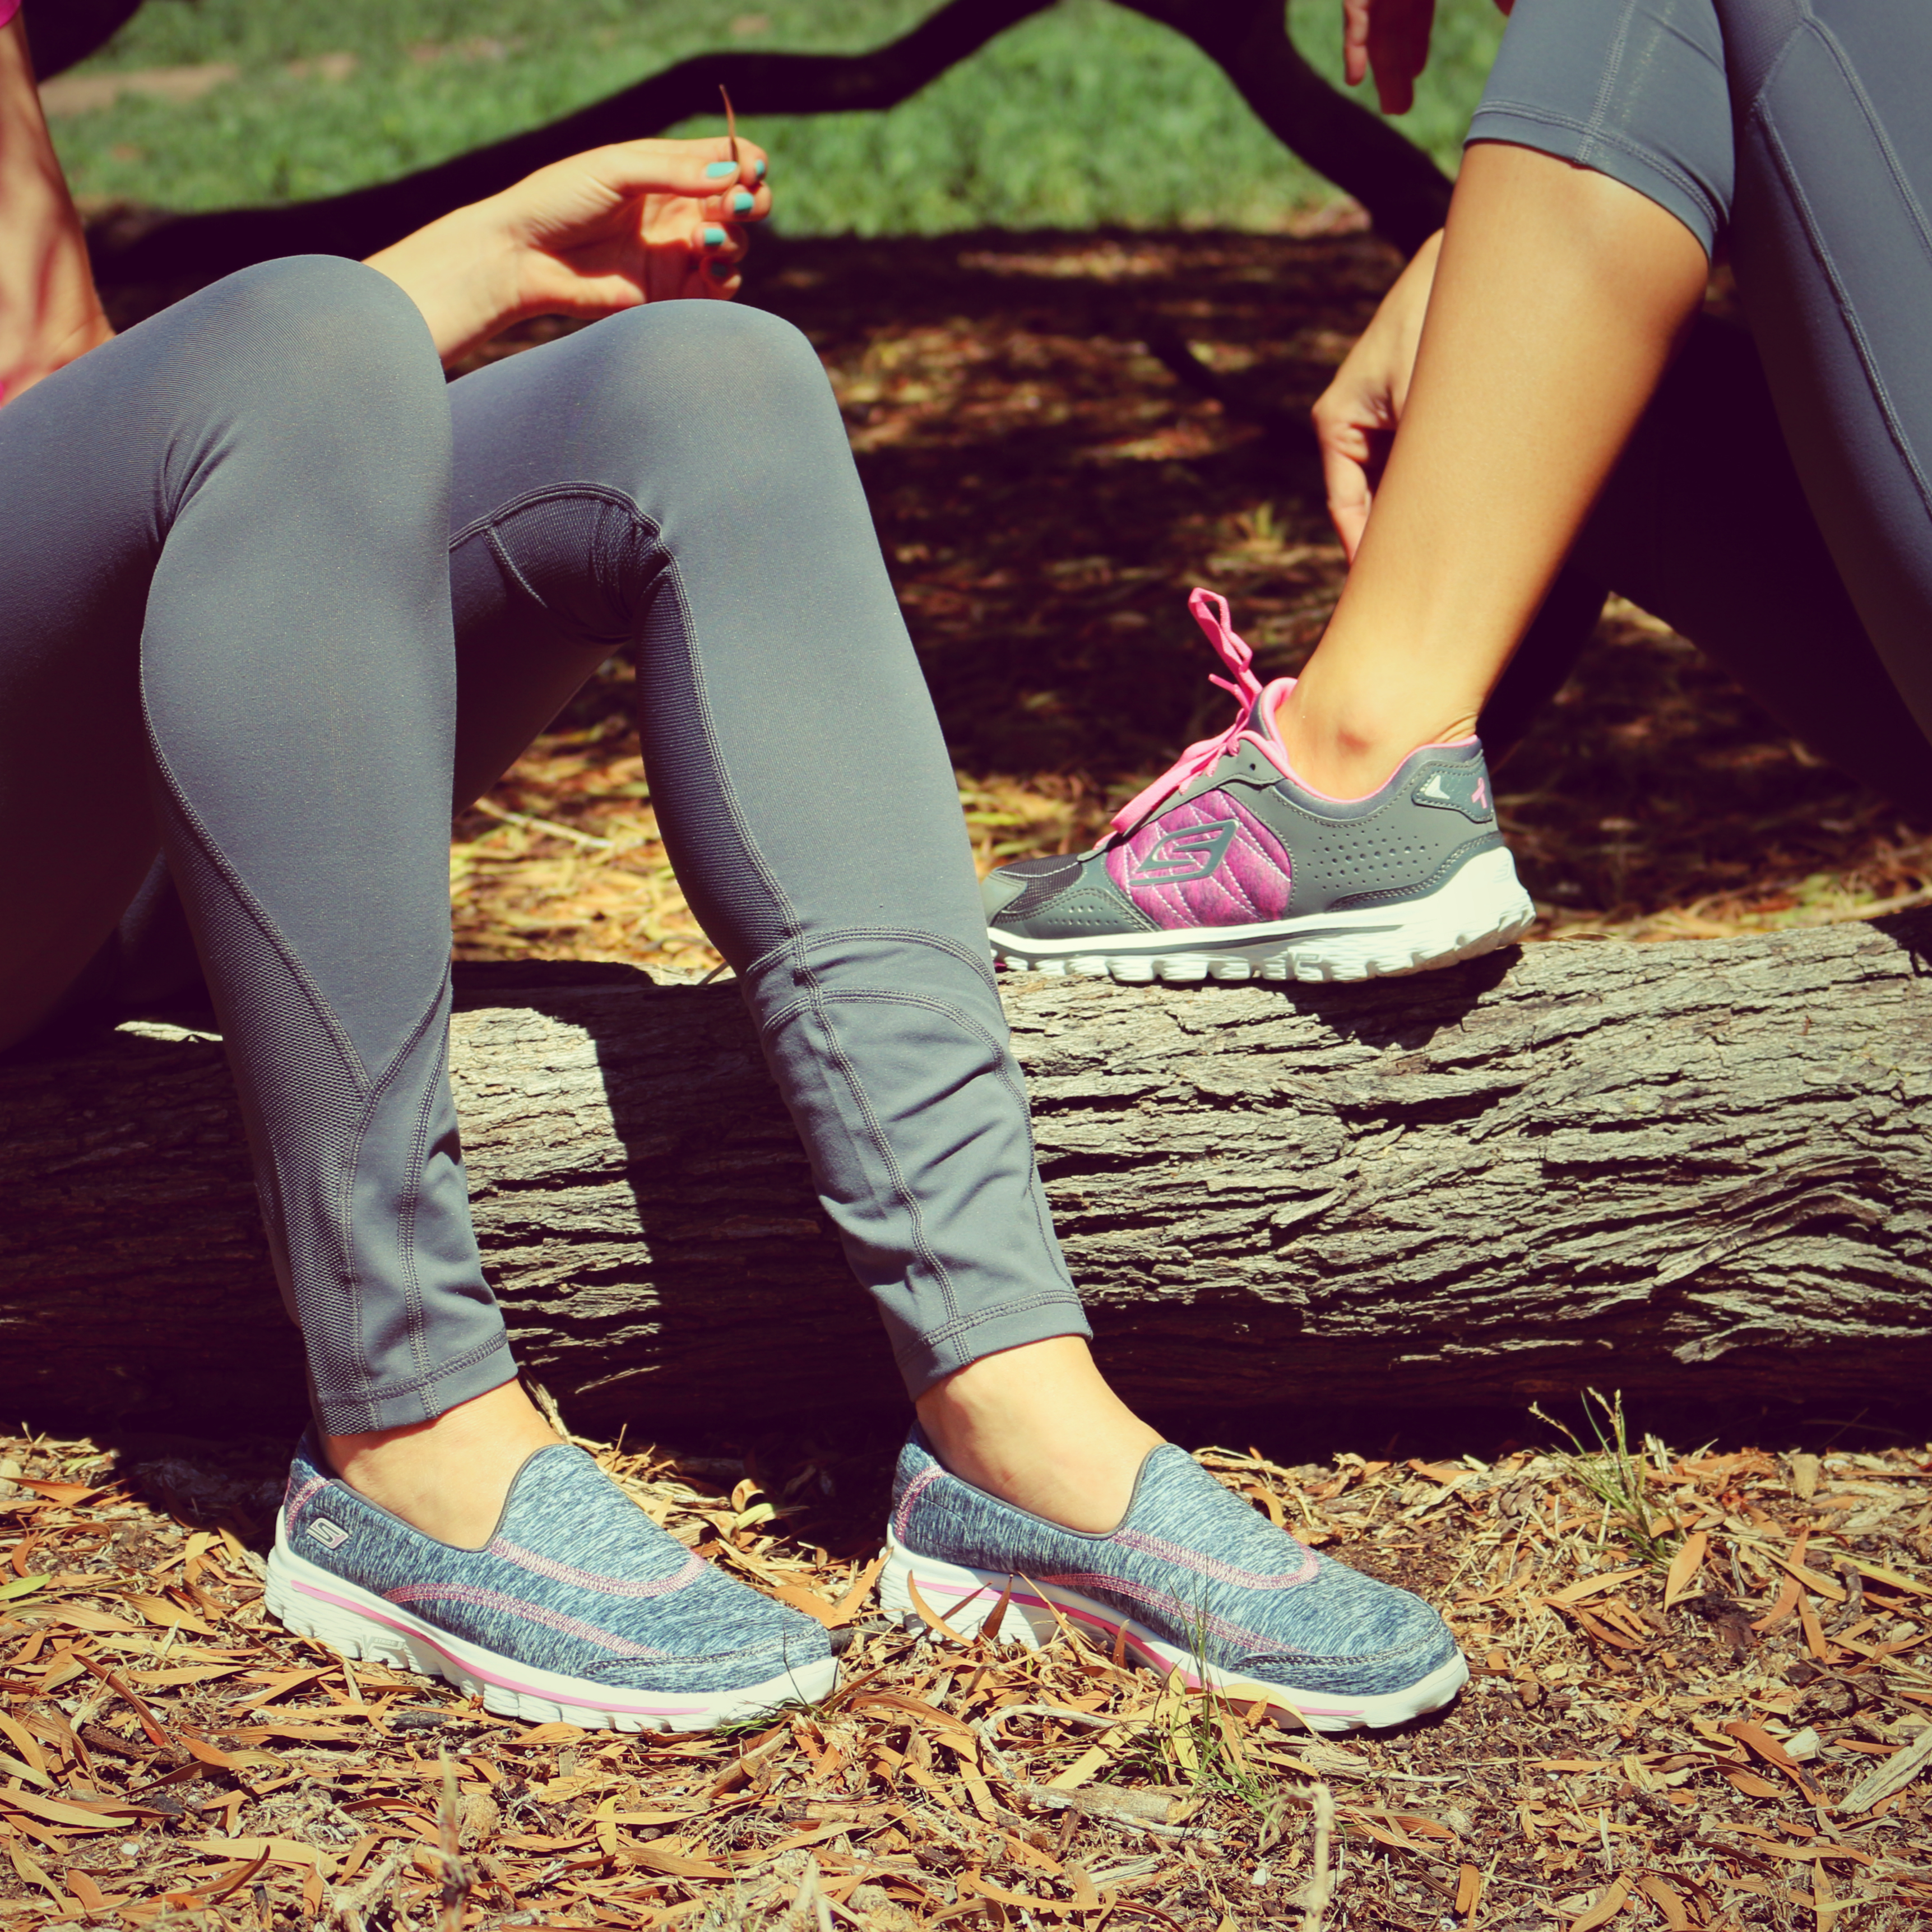 Skechers Performance Division Partners with American Cancer